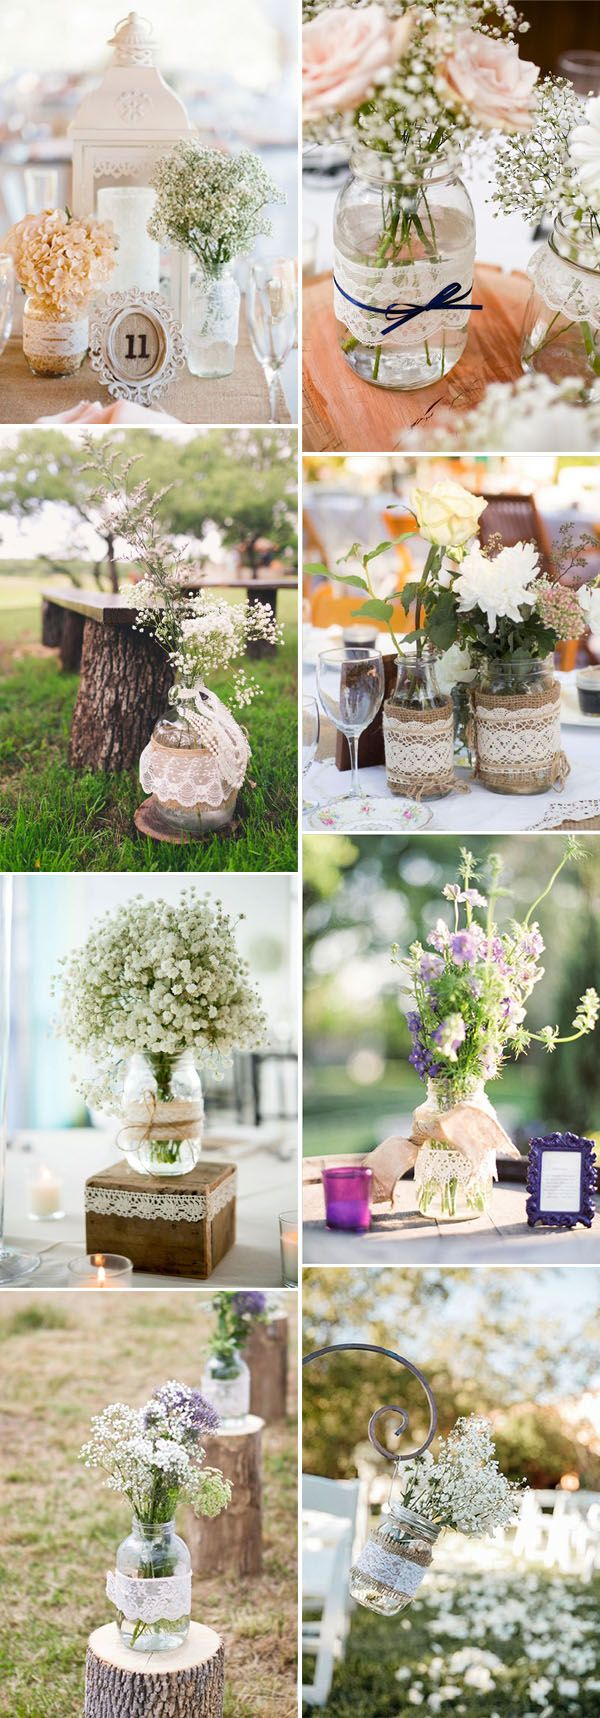 decorate your wedding mason jars with lace